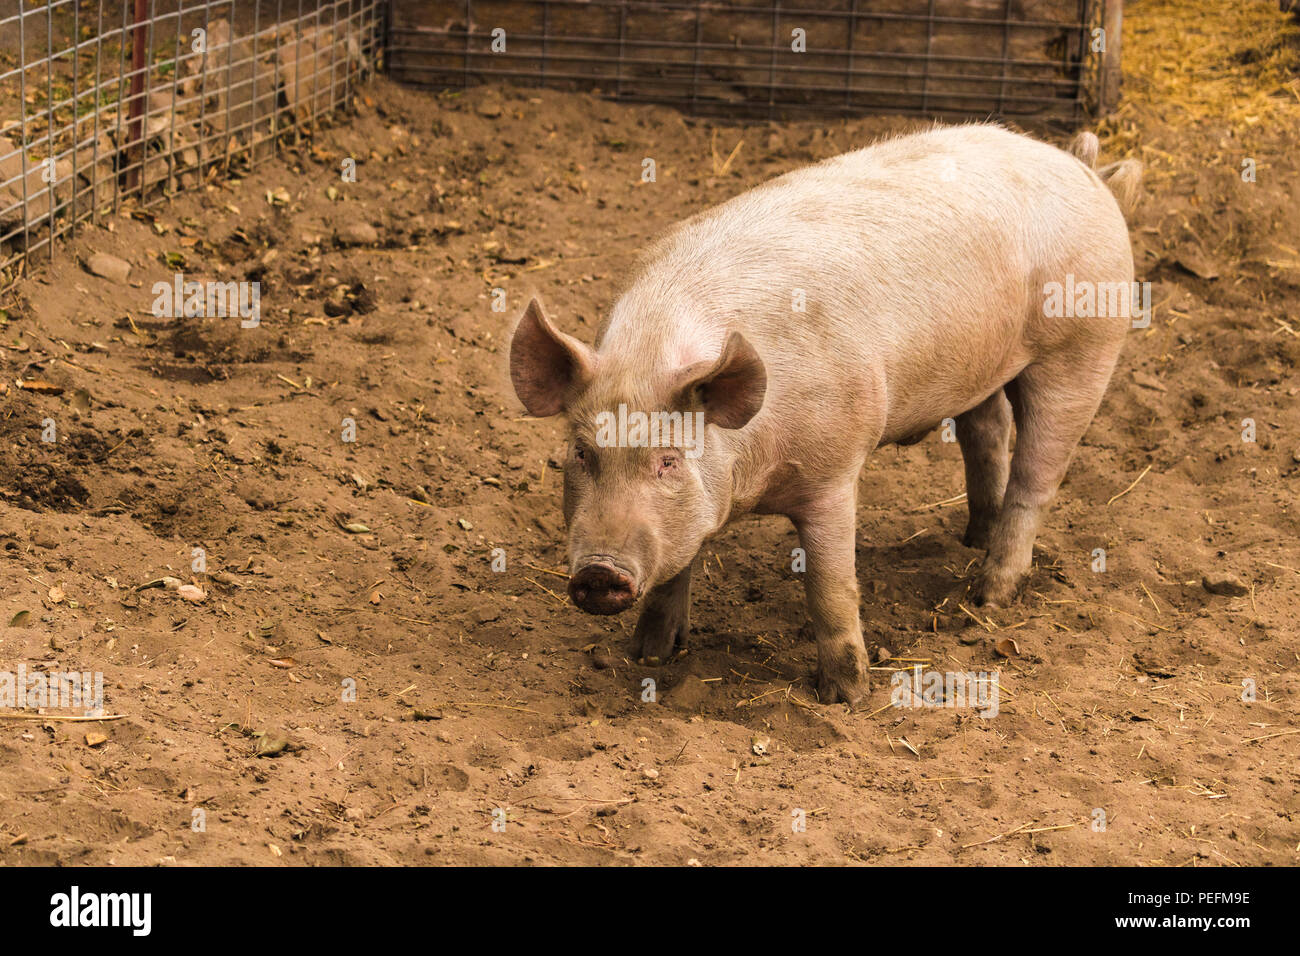 Full body shot of startled, wary, cautious single dirty young domestic pink standing pig, with muddy feet, big ears, well cared for and healthy waitin - Stock Image